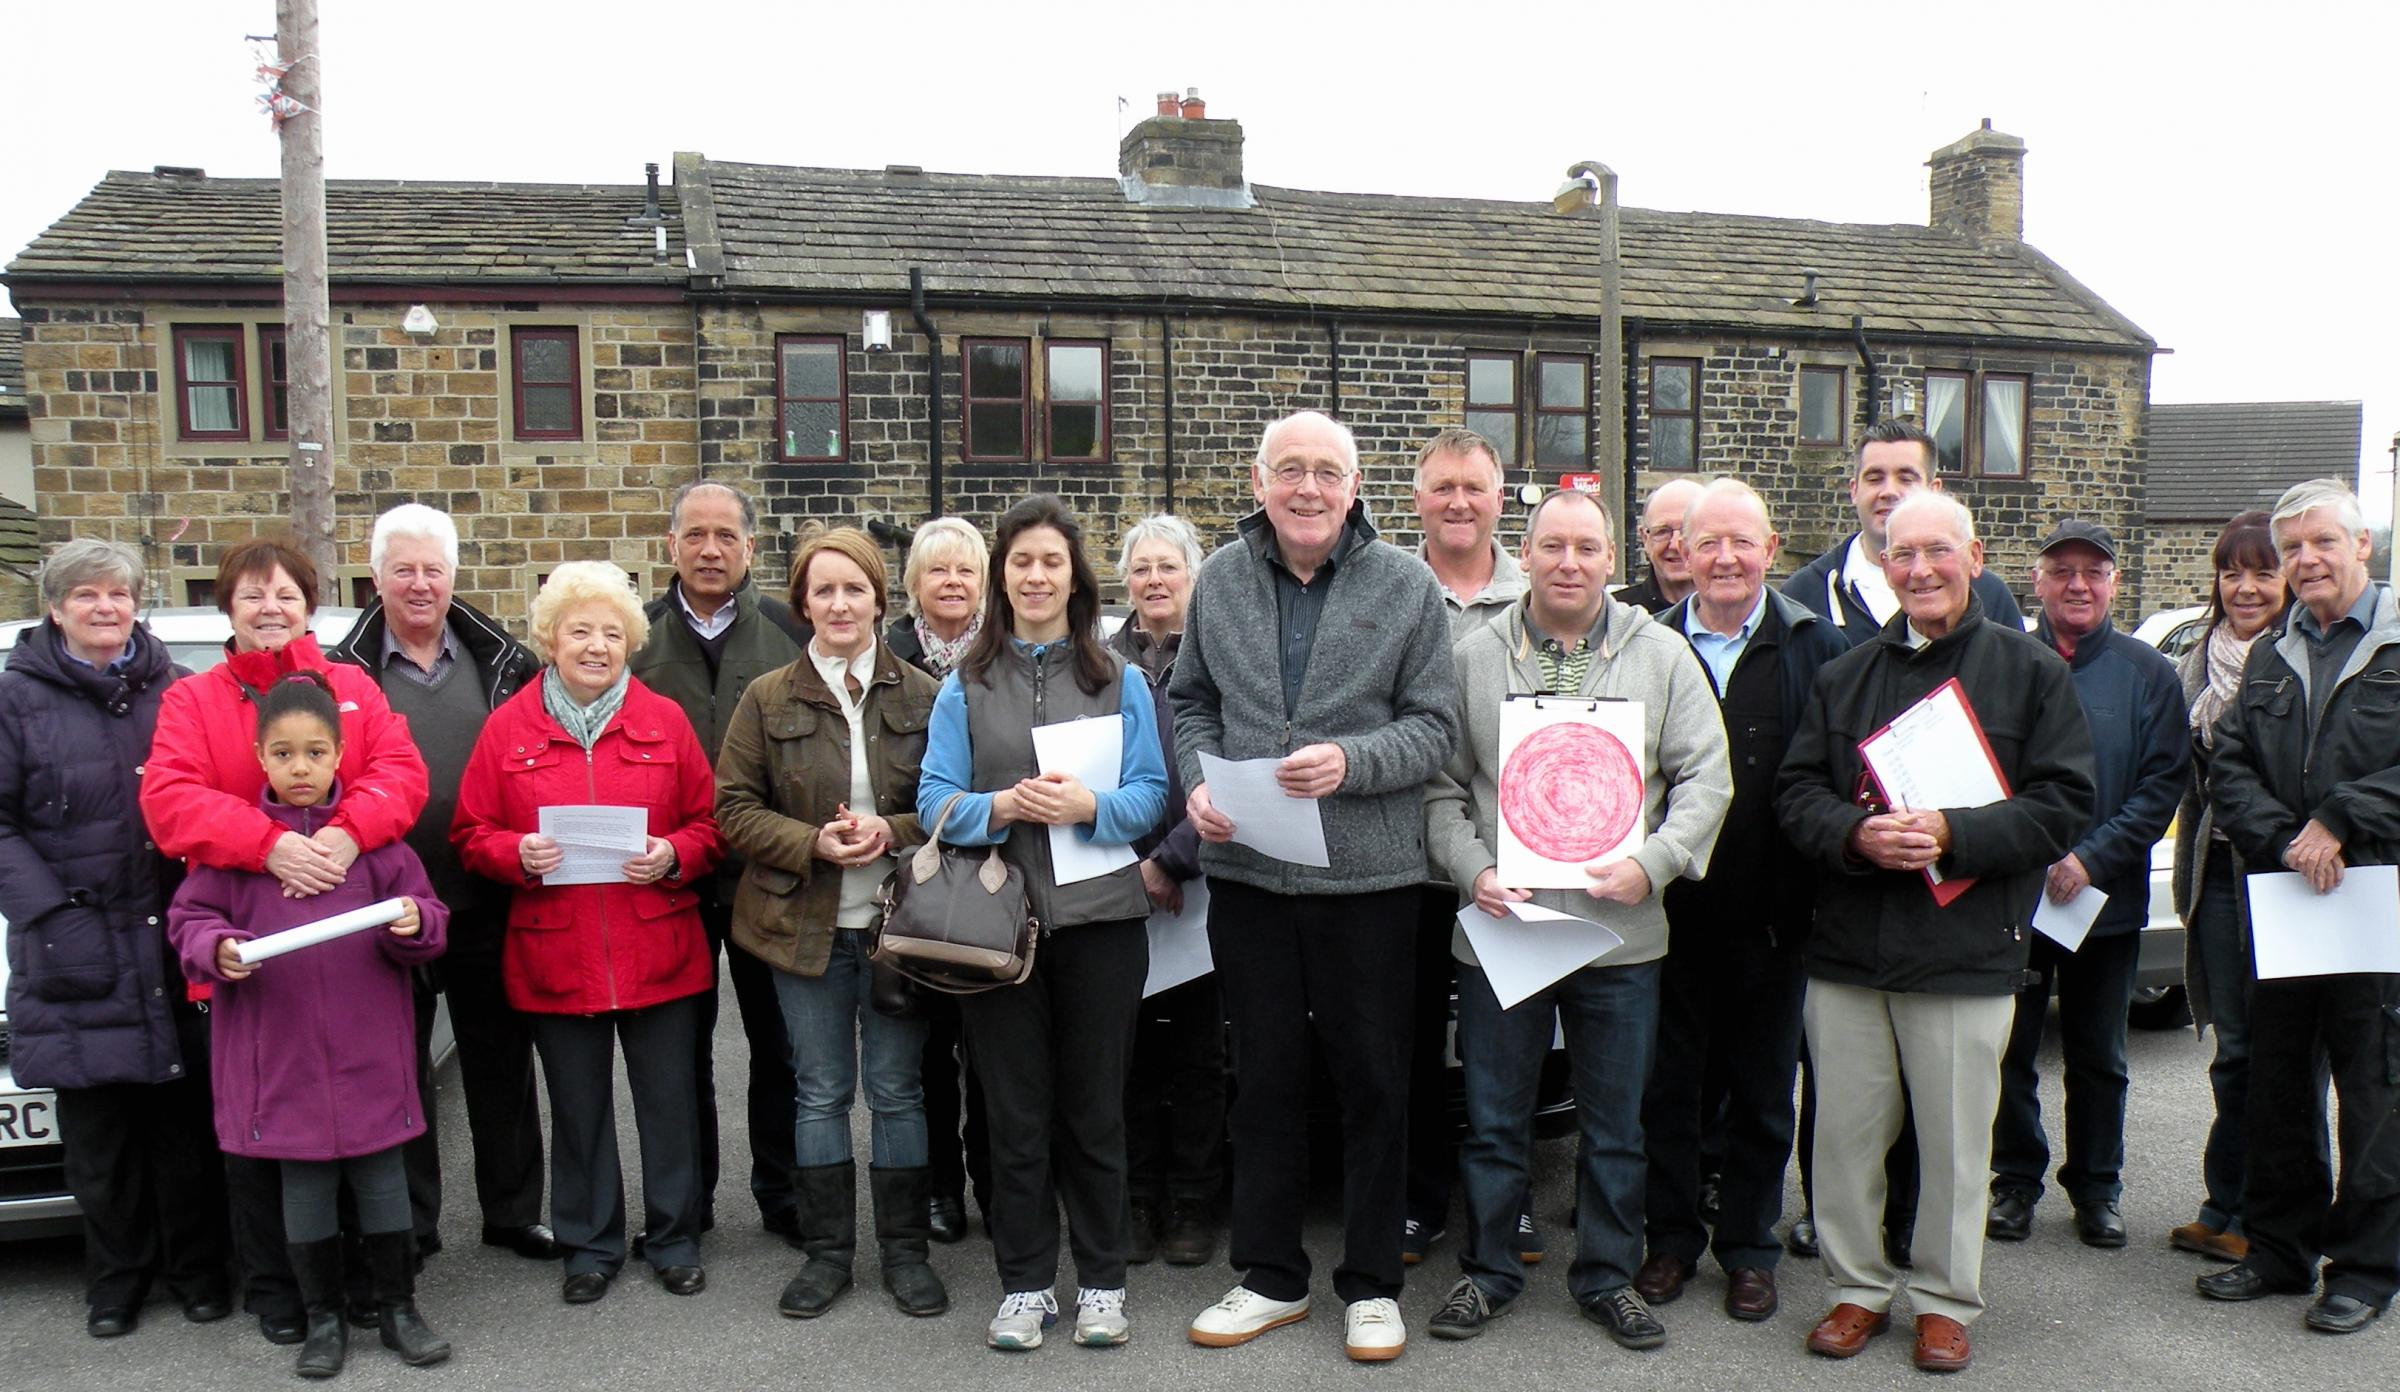 Thackley residents go on the road to put congestion case about new homes